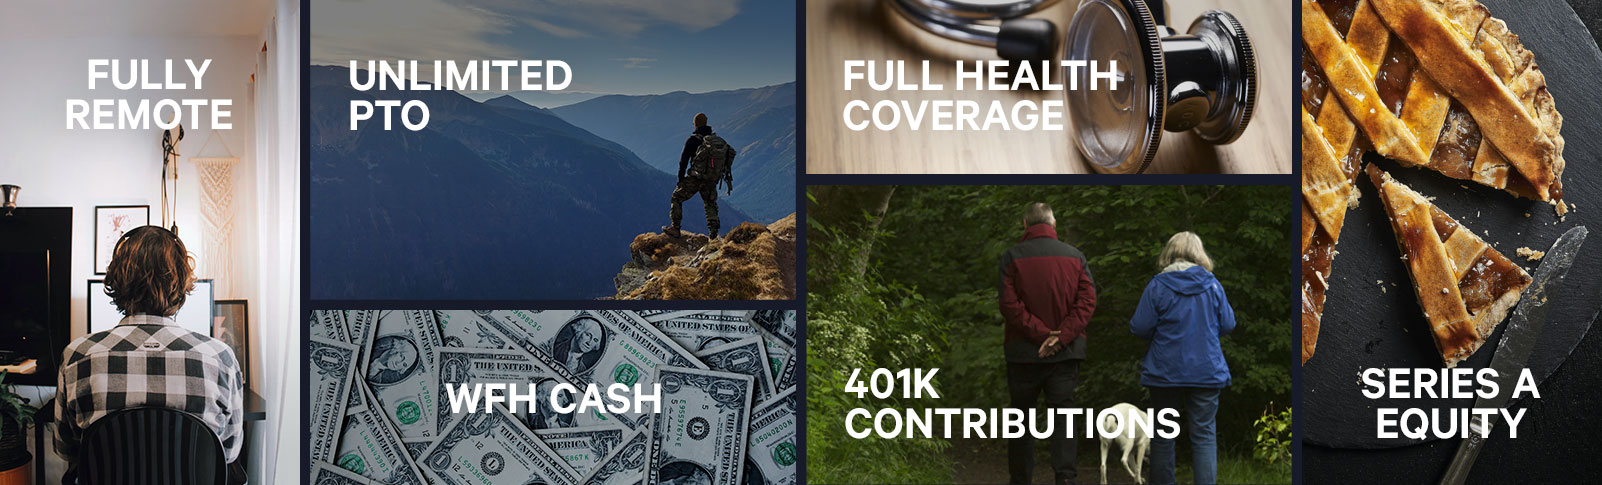 Rasgo Benefits include: Fully Remote, Unlimited PTO, Full Health Coverage, WFH Cash, 401K Contributions, & Series A Equity